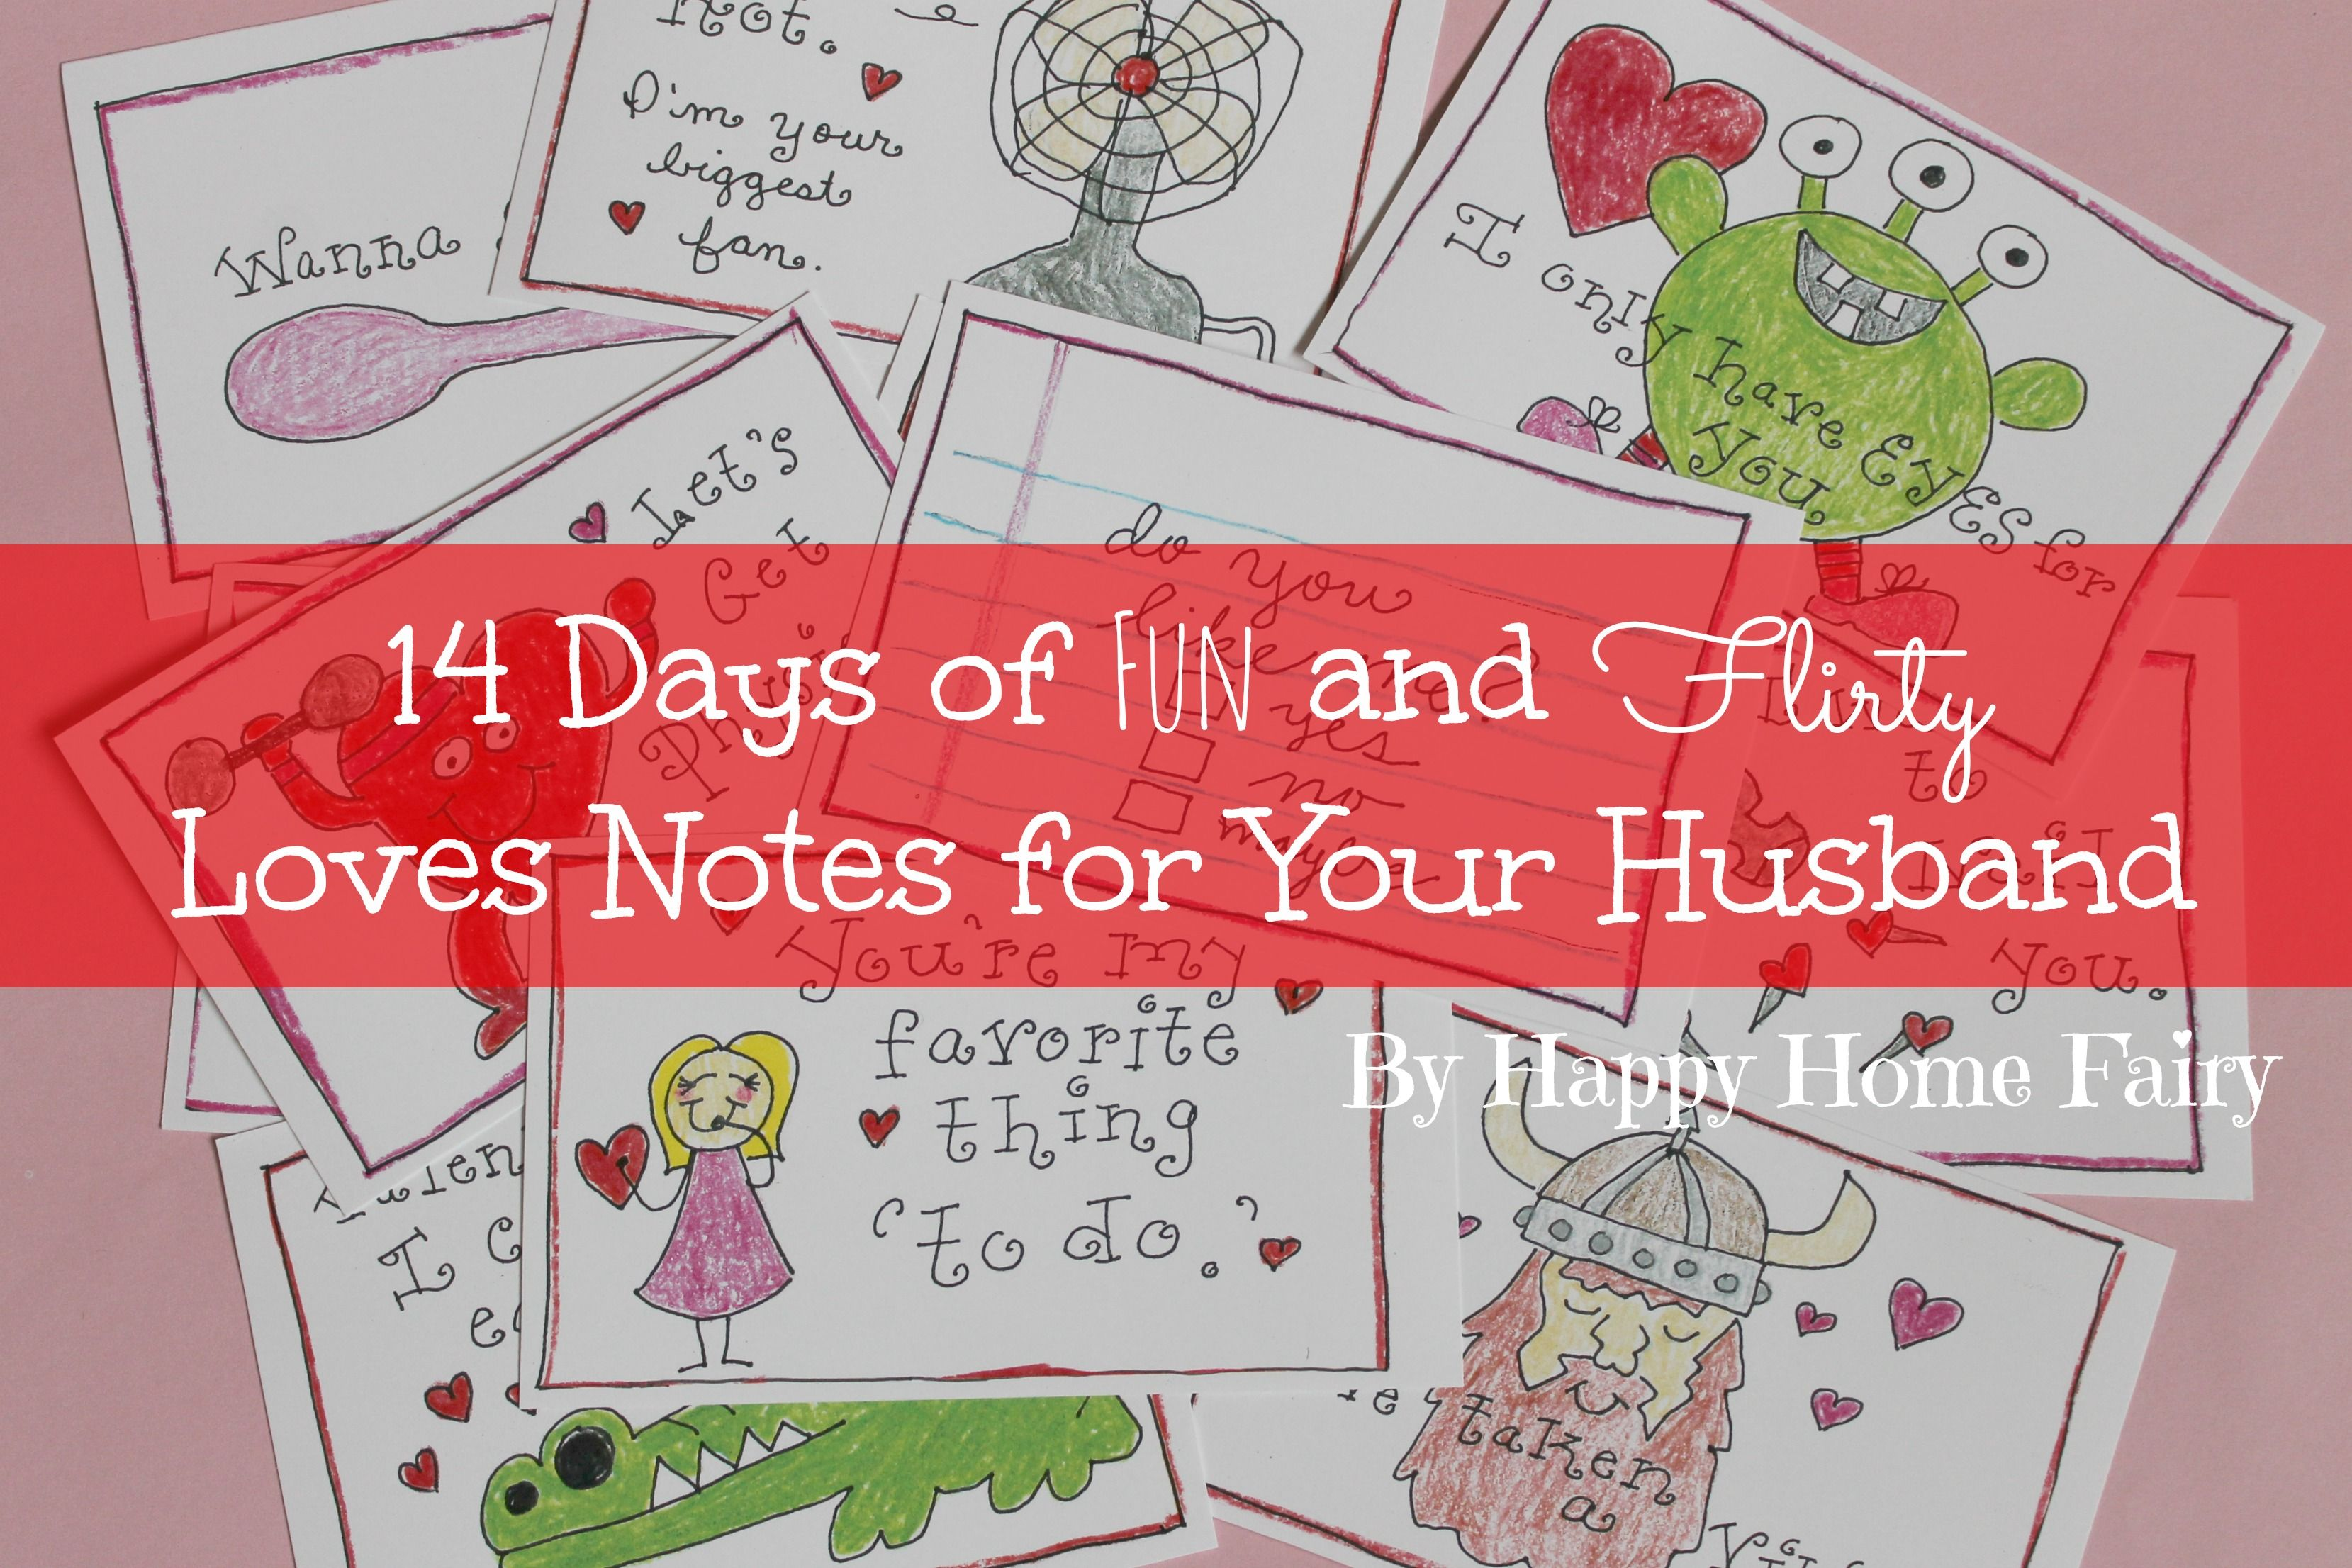 14 days of fun and flirty love notes for your husband free